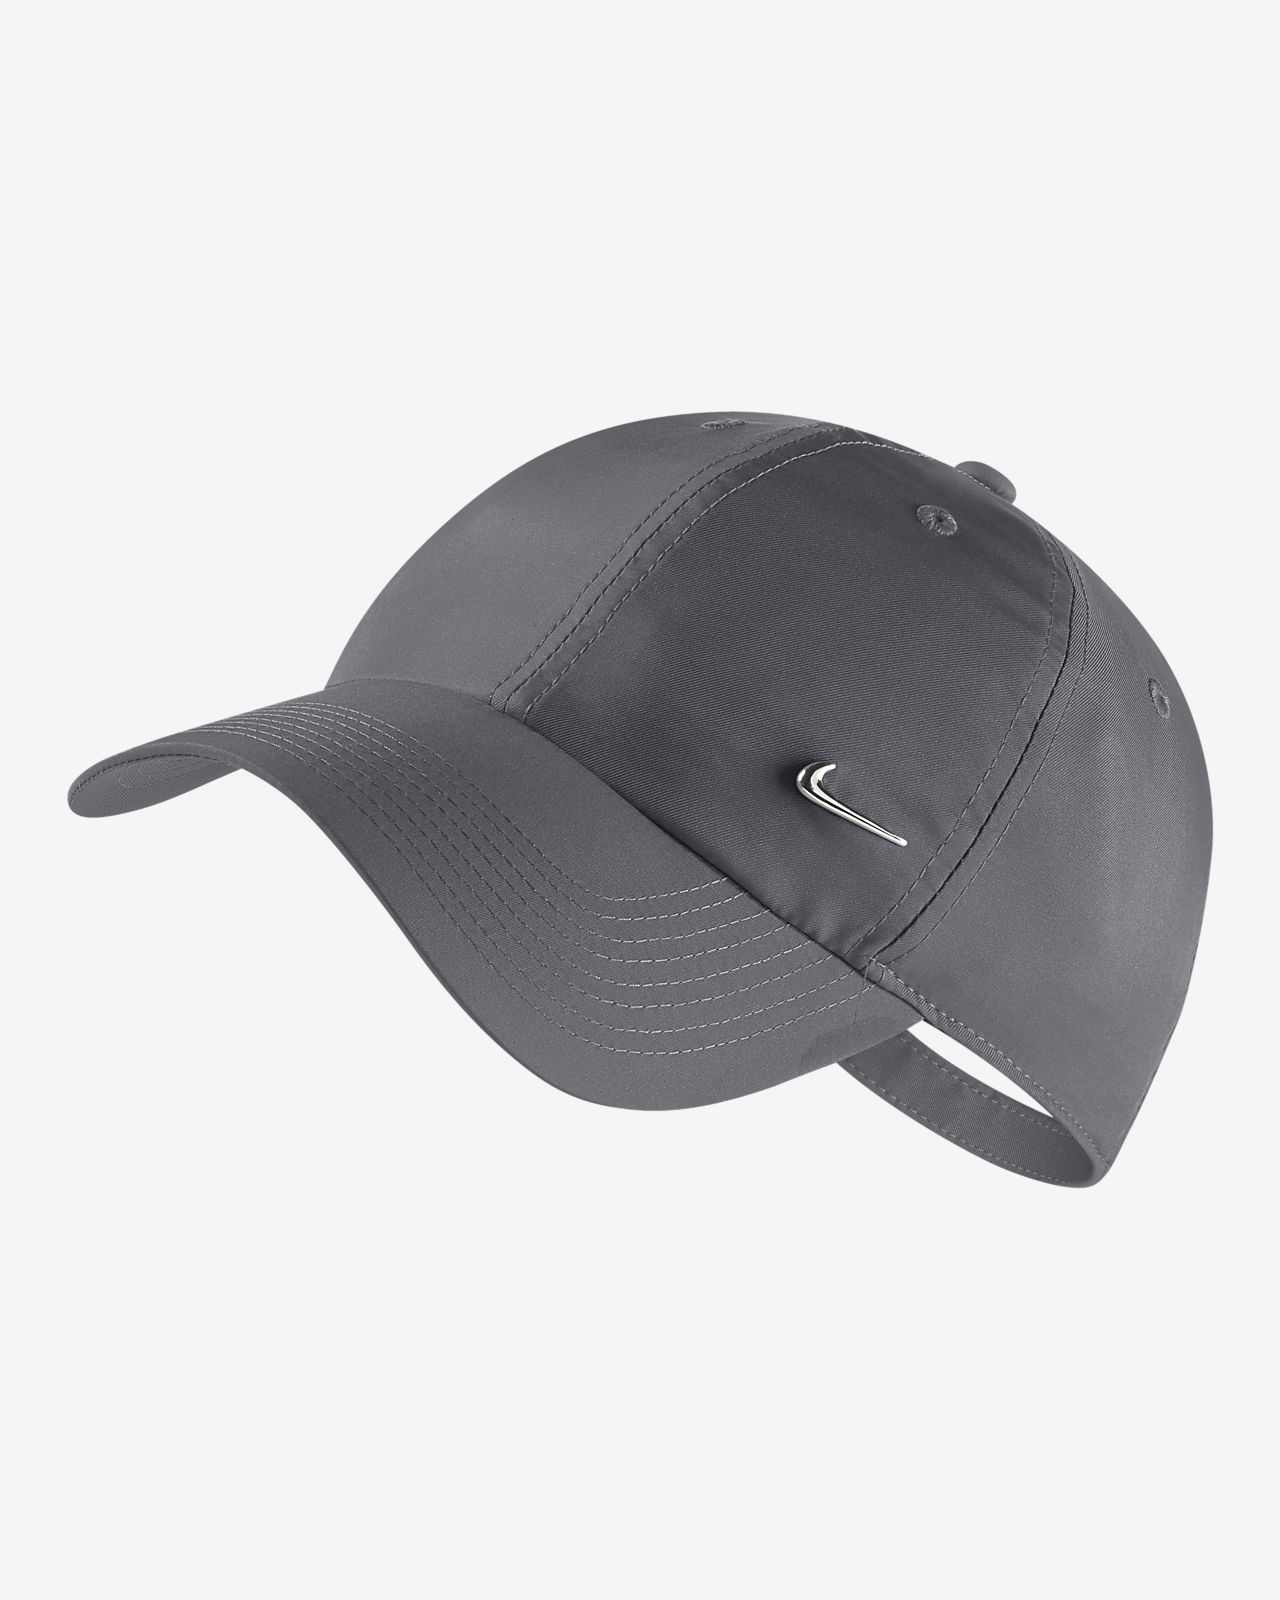 cheaper recognized brands new products Casquette réglable Nike Metal Swoosh H86